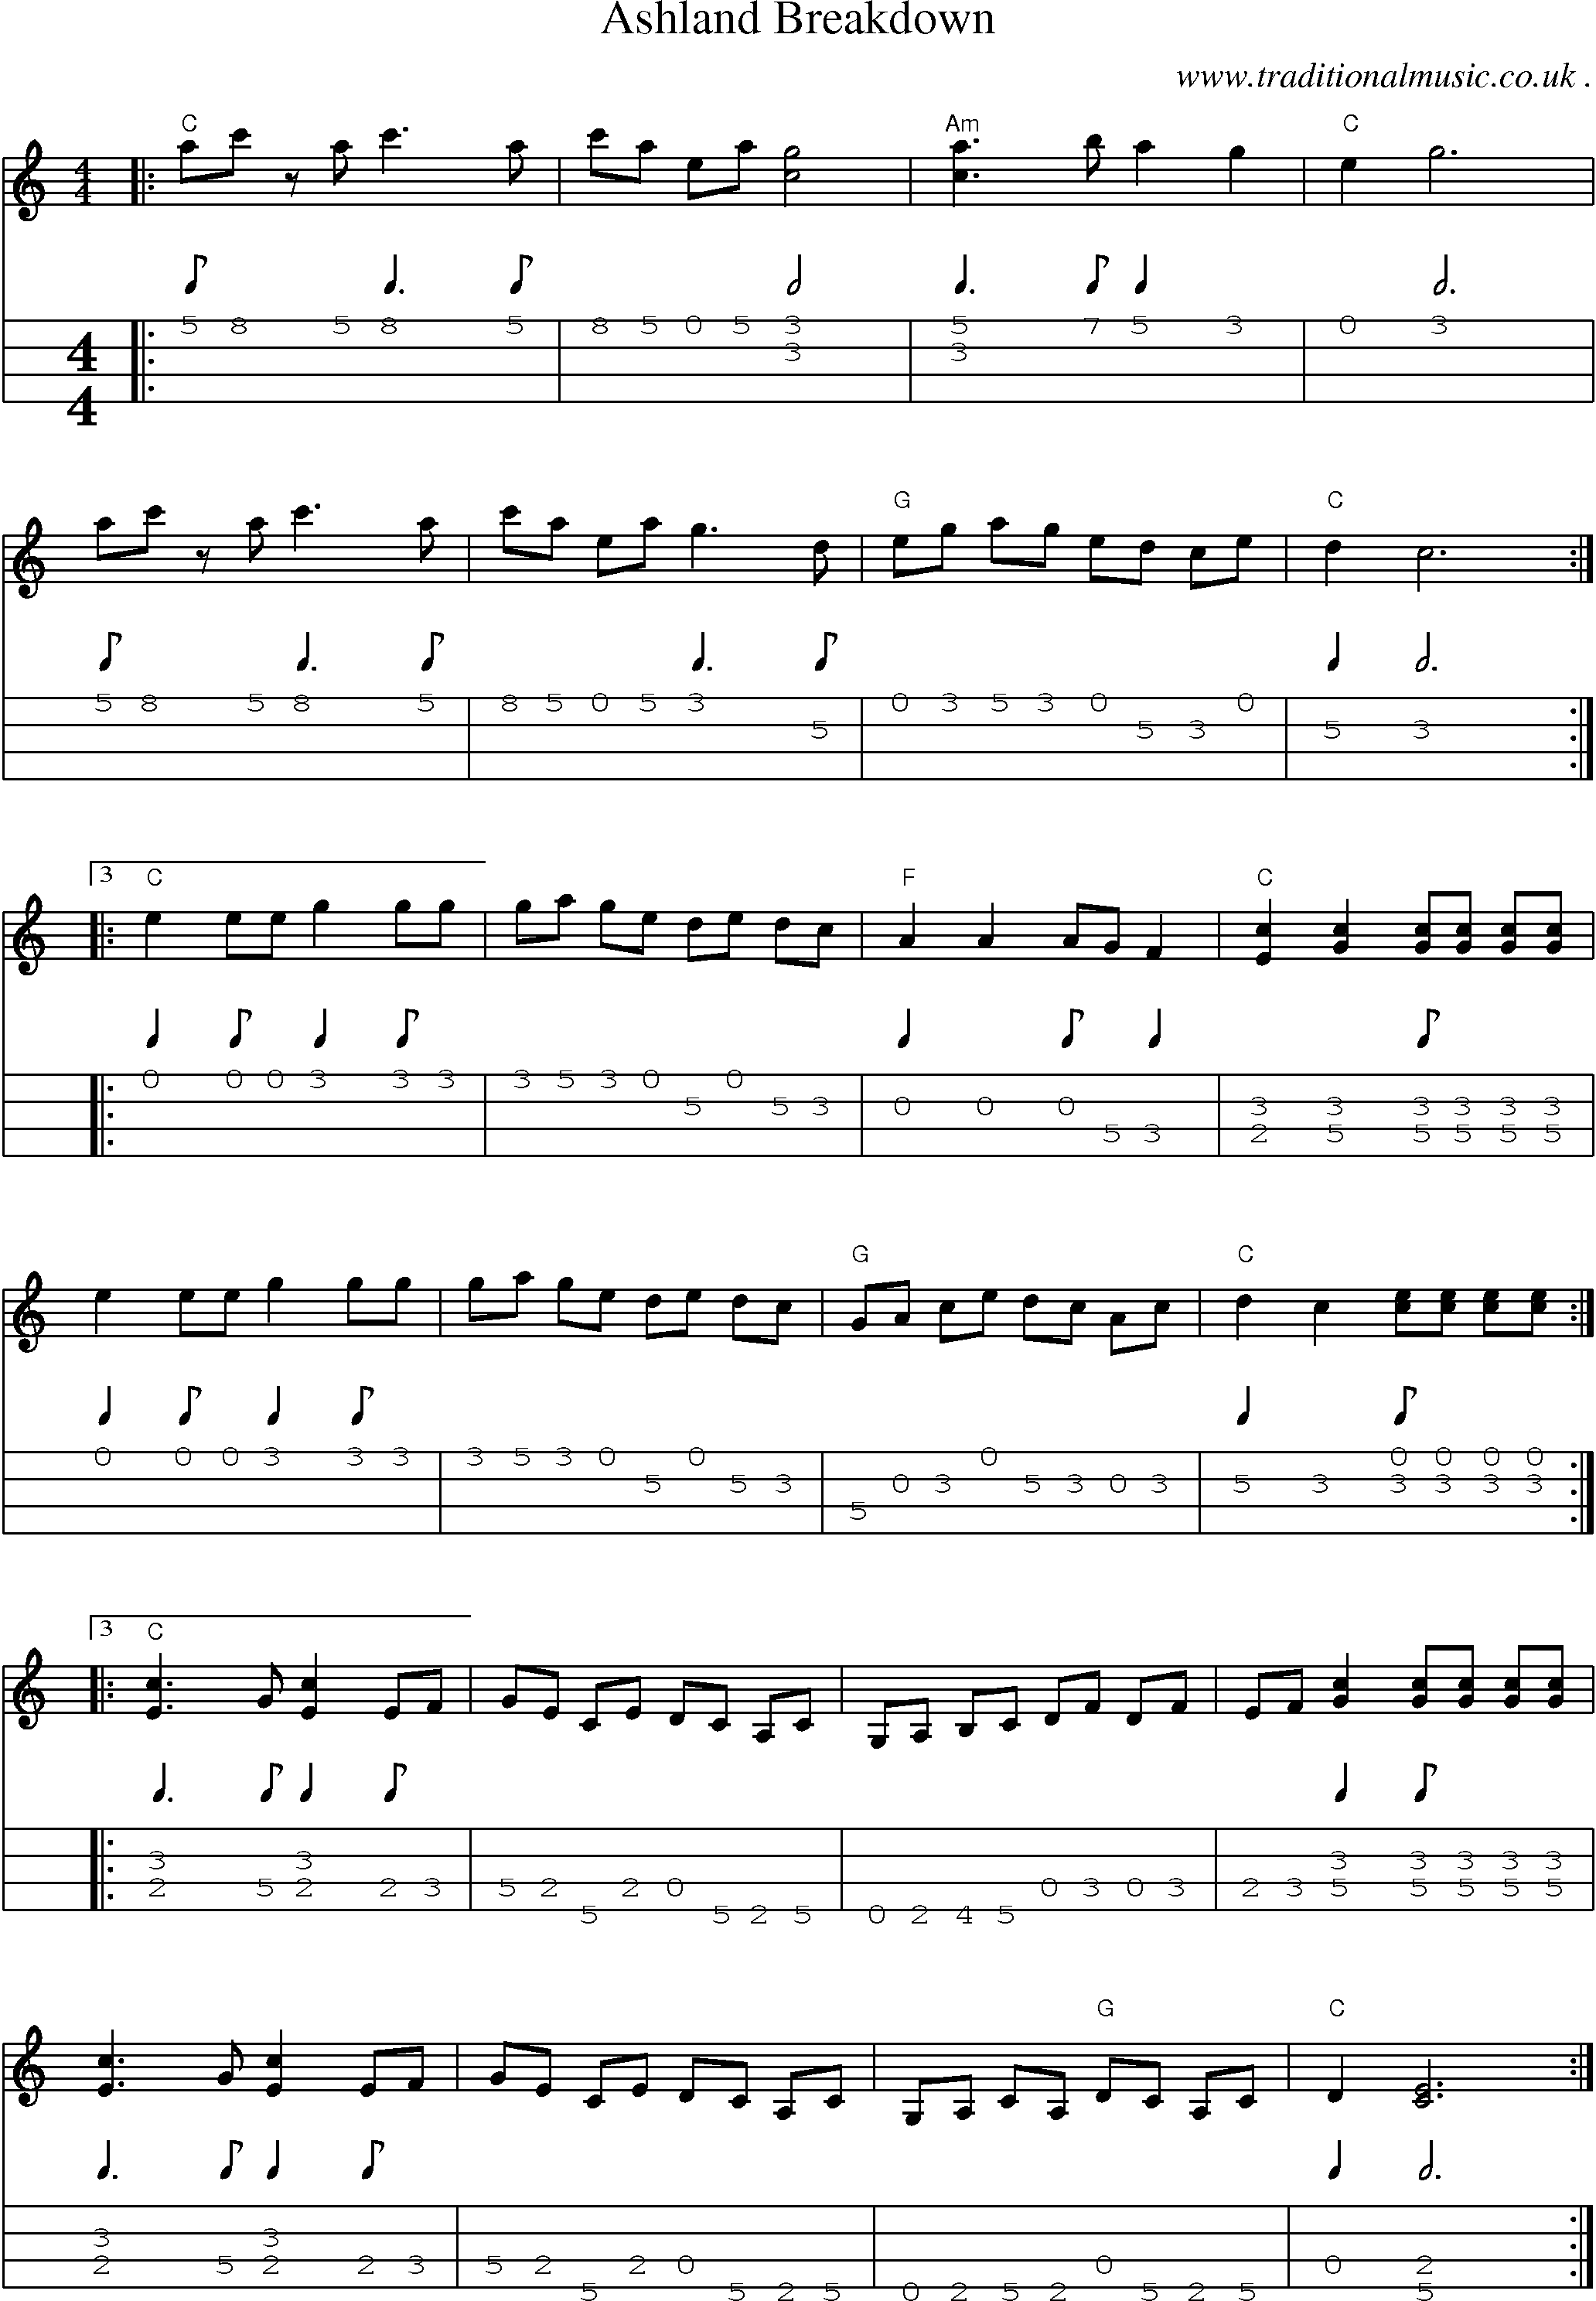 American Old Time Music Scores And Tabs For Mandolin Ashland